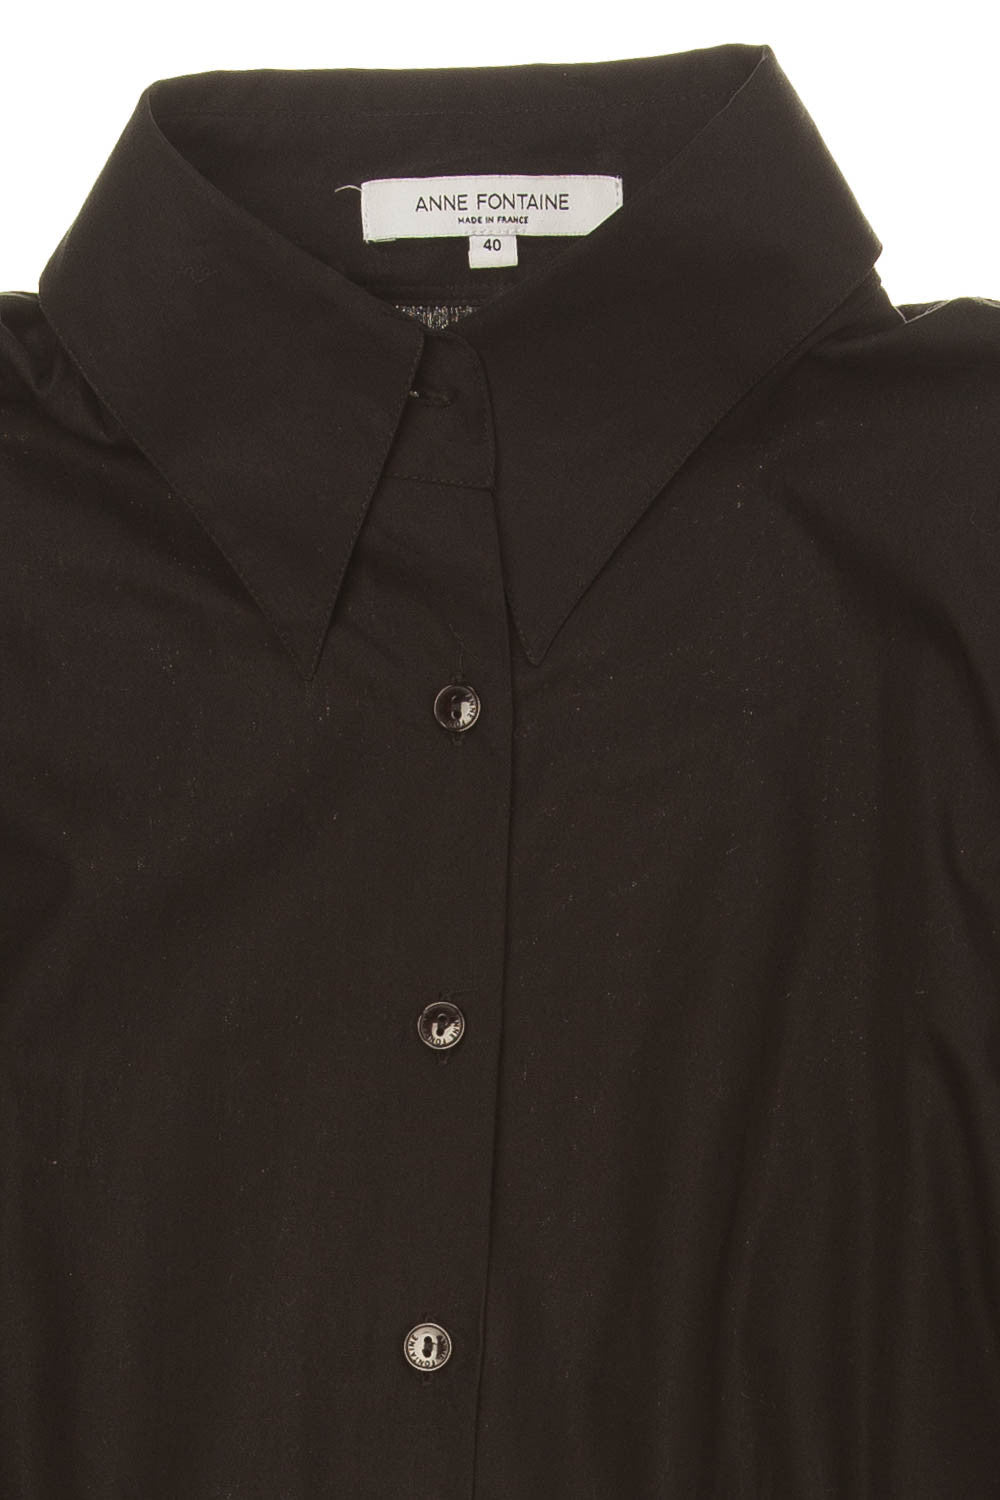 5ab4466e61b1be Anne Fontaine - Black Button Down Blouse - FR 40 – LUXHAVE